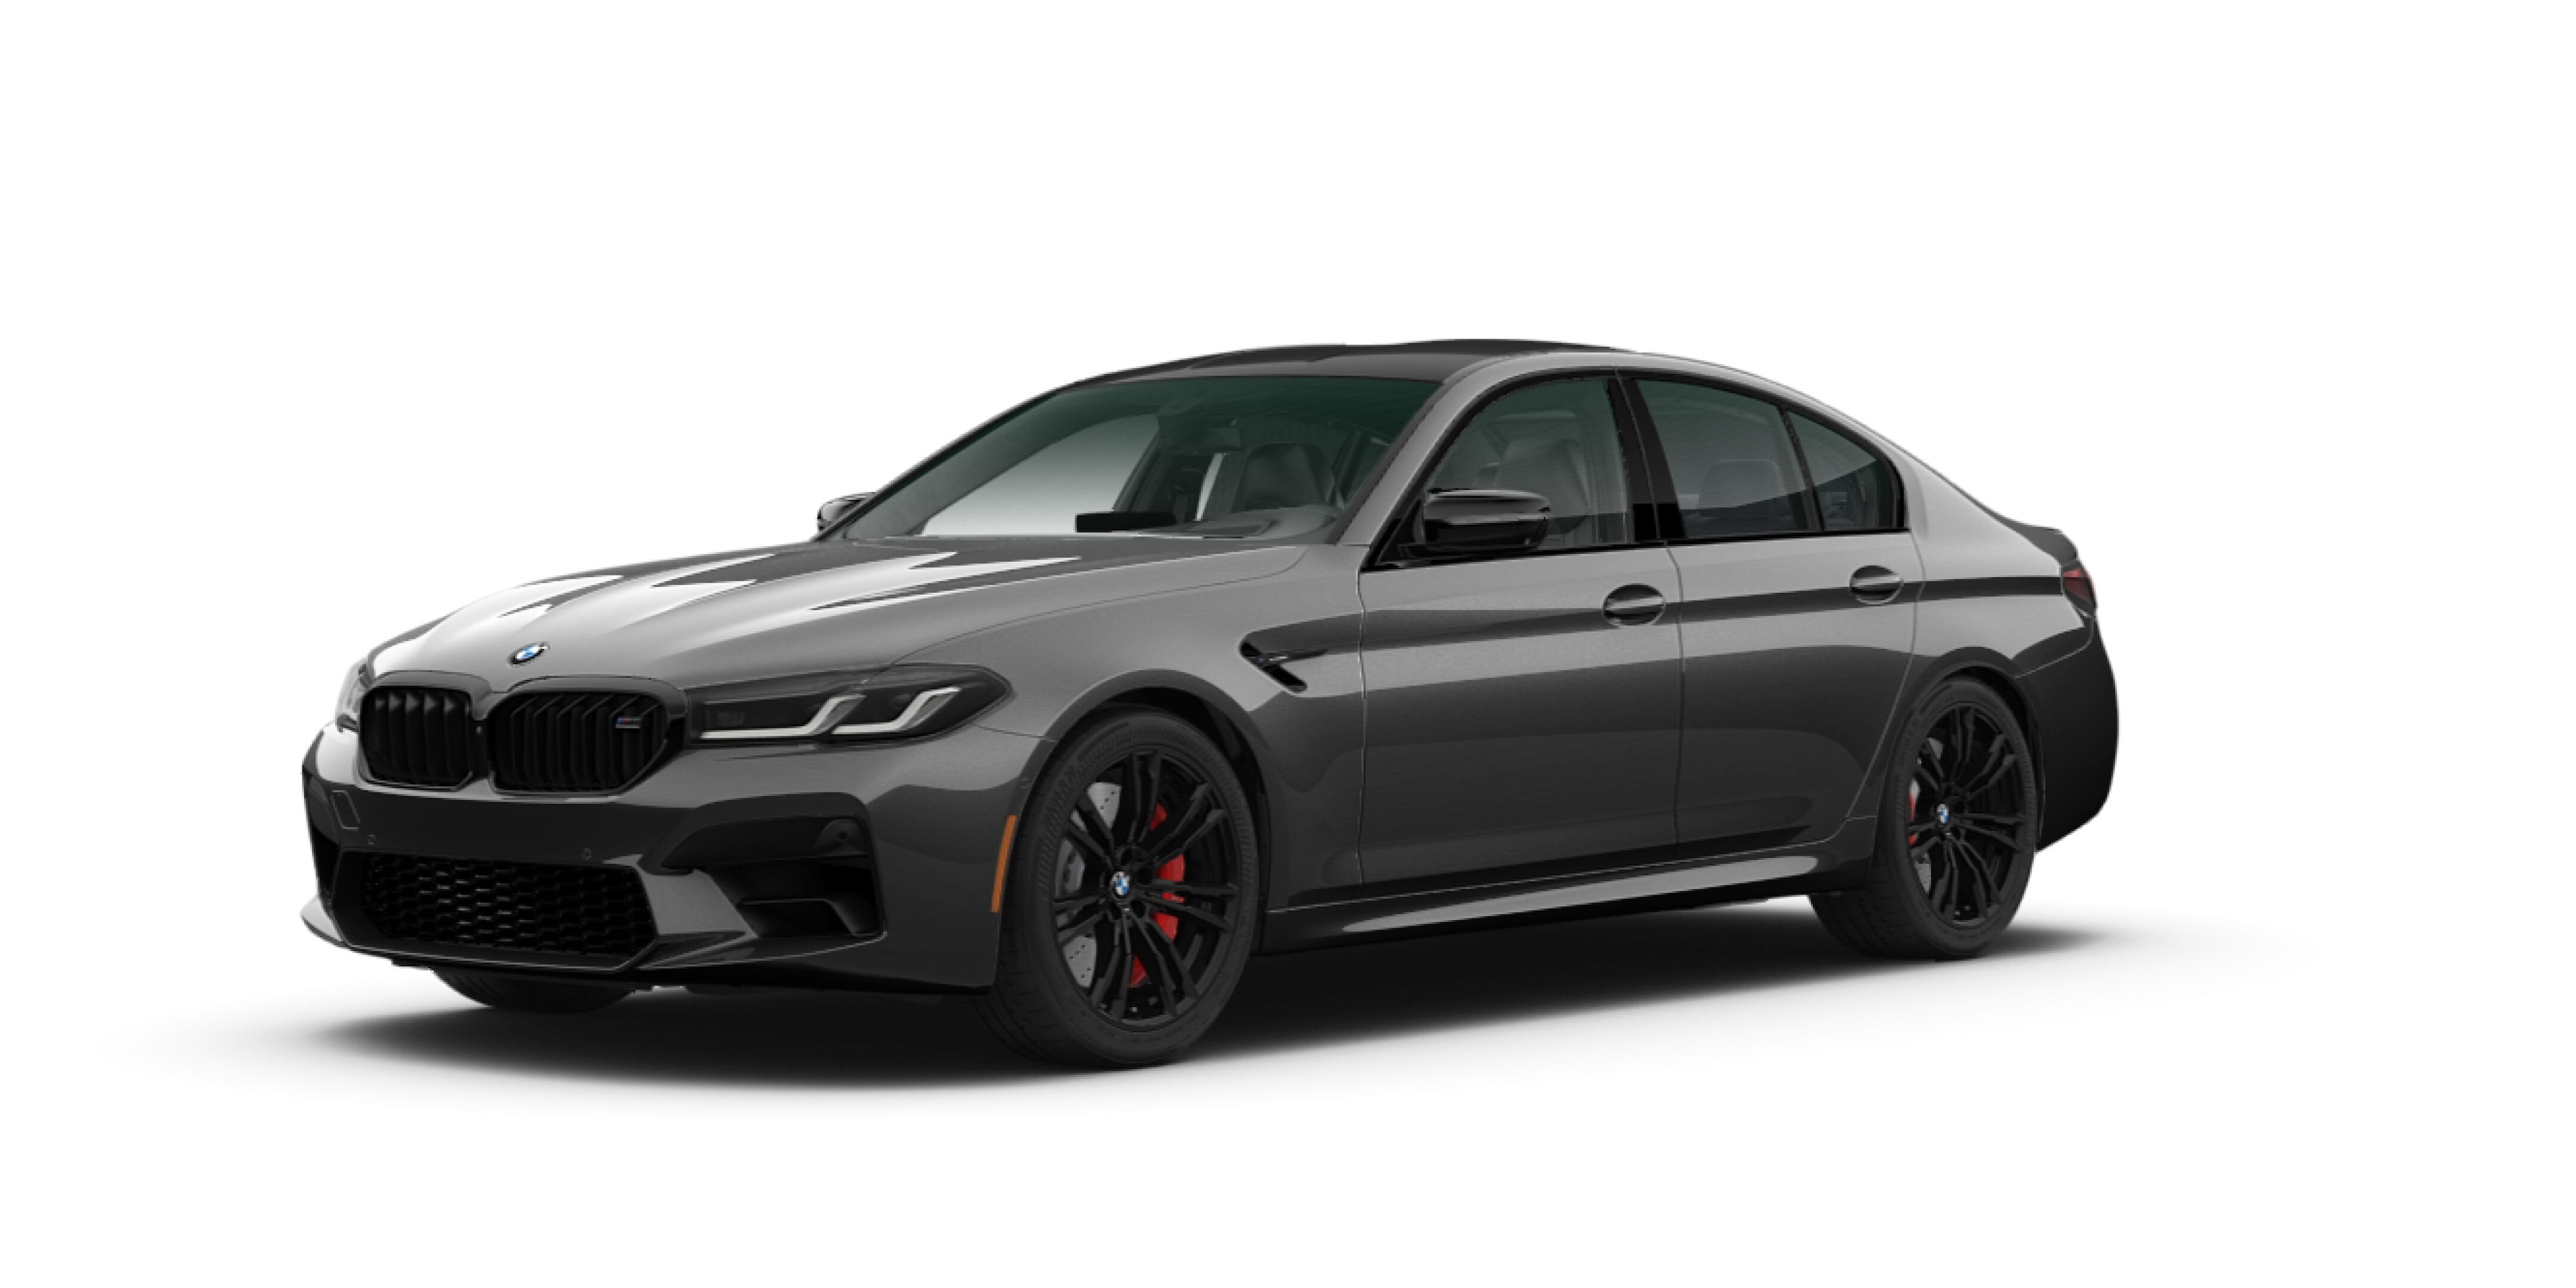 2021 Bmw M5 For Sale In Watertown Ct Bmw Of Watertown